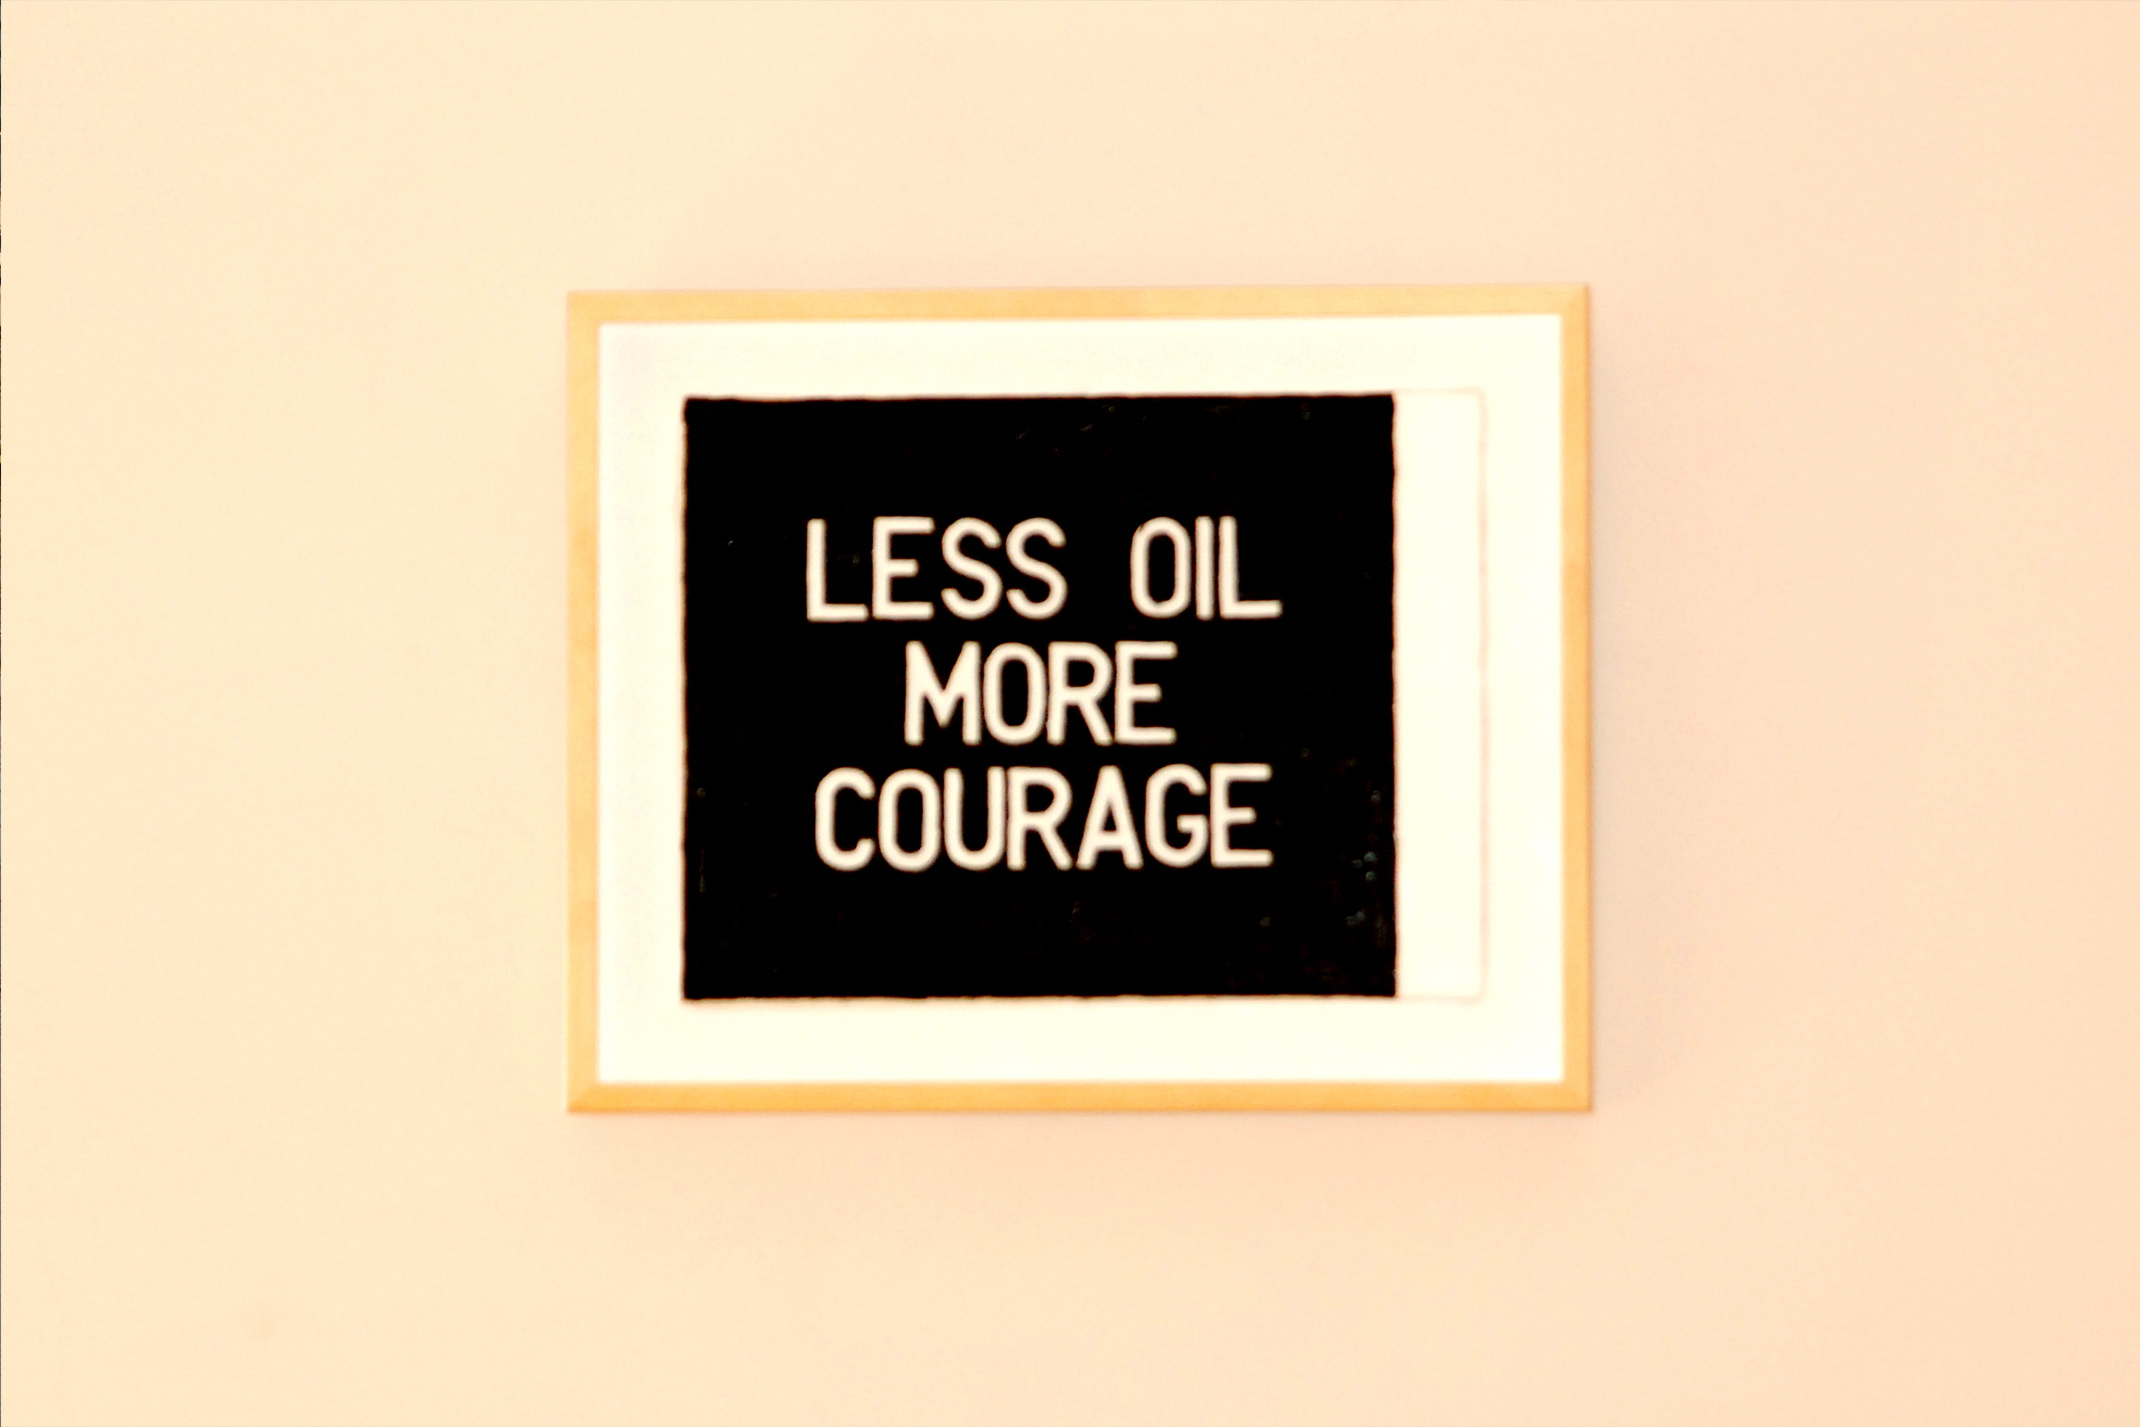 Less Oil More Courage Image